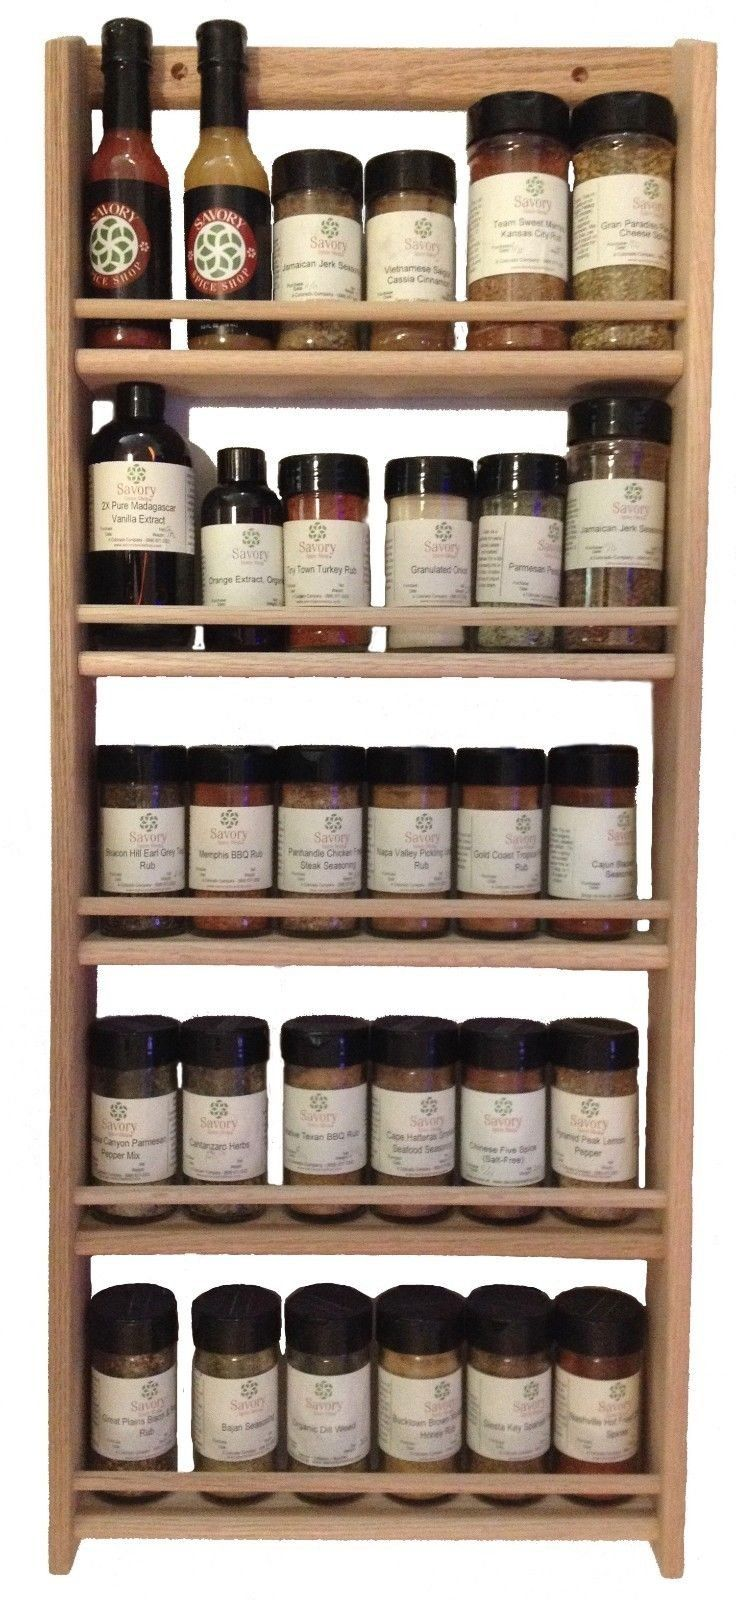 "Wood Spice Rack For Wall Beauteous Solid Oak Wood Spice Rack  3275""h X 1375 ""w  Wall Mount Wooden Design Ideas"